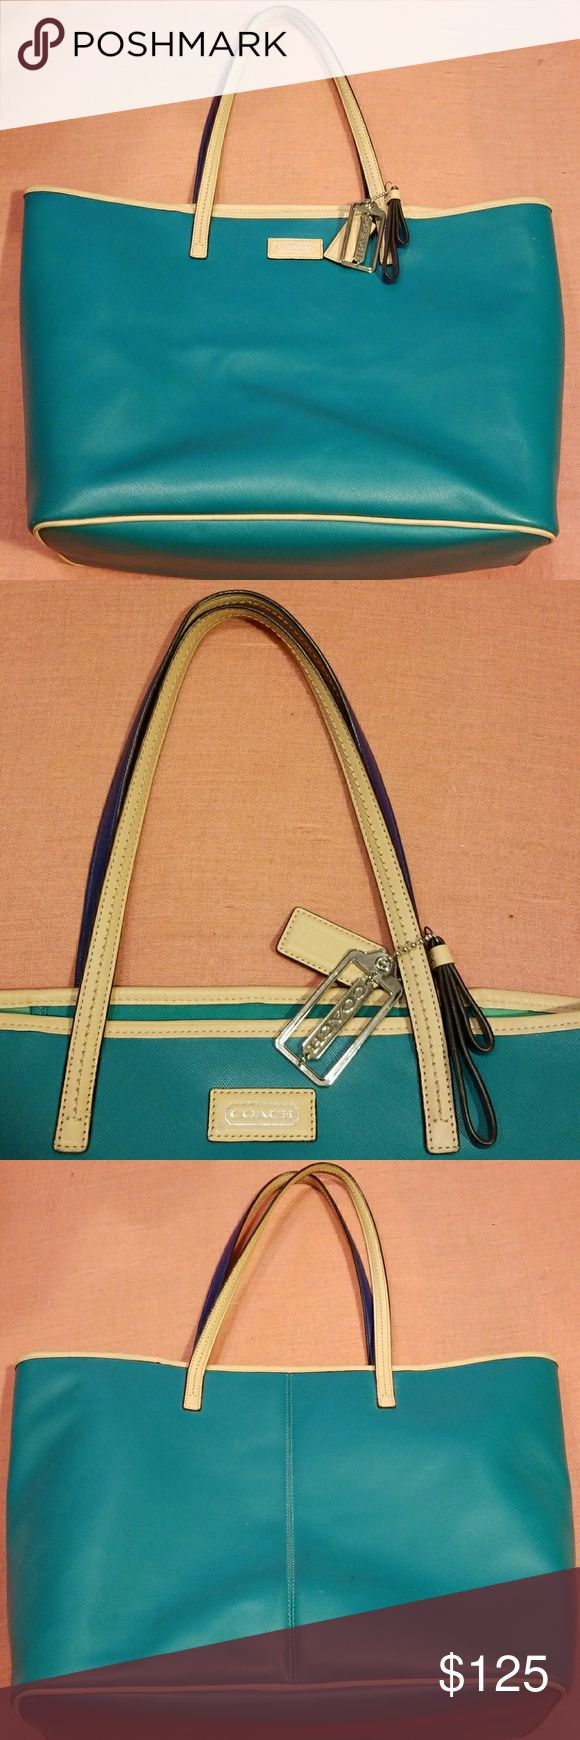 COACH TOTE BAG Like new, Coach Tote, Green color with tan & blue handles, excellent, excellent condition, see all pics. Coach Bags Totes